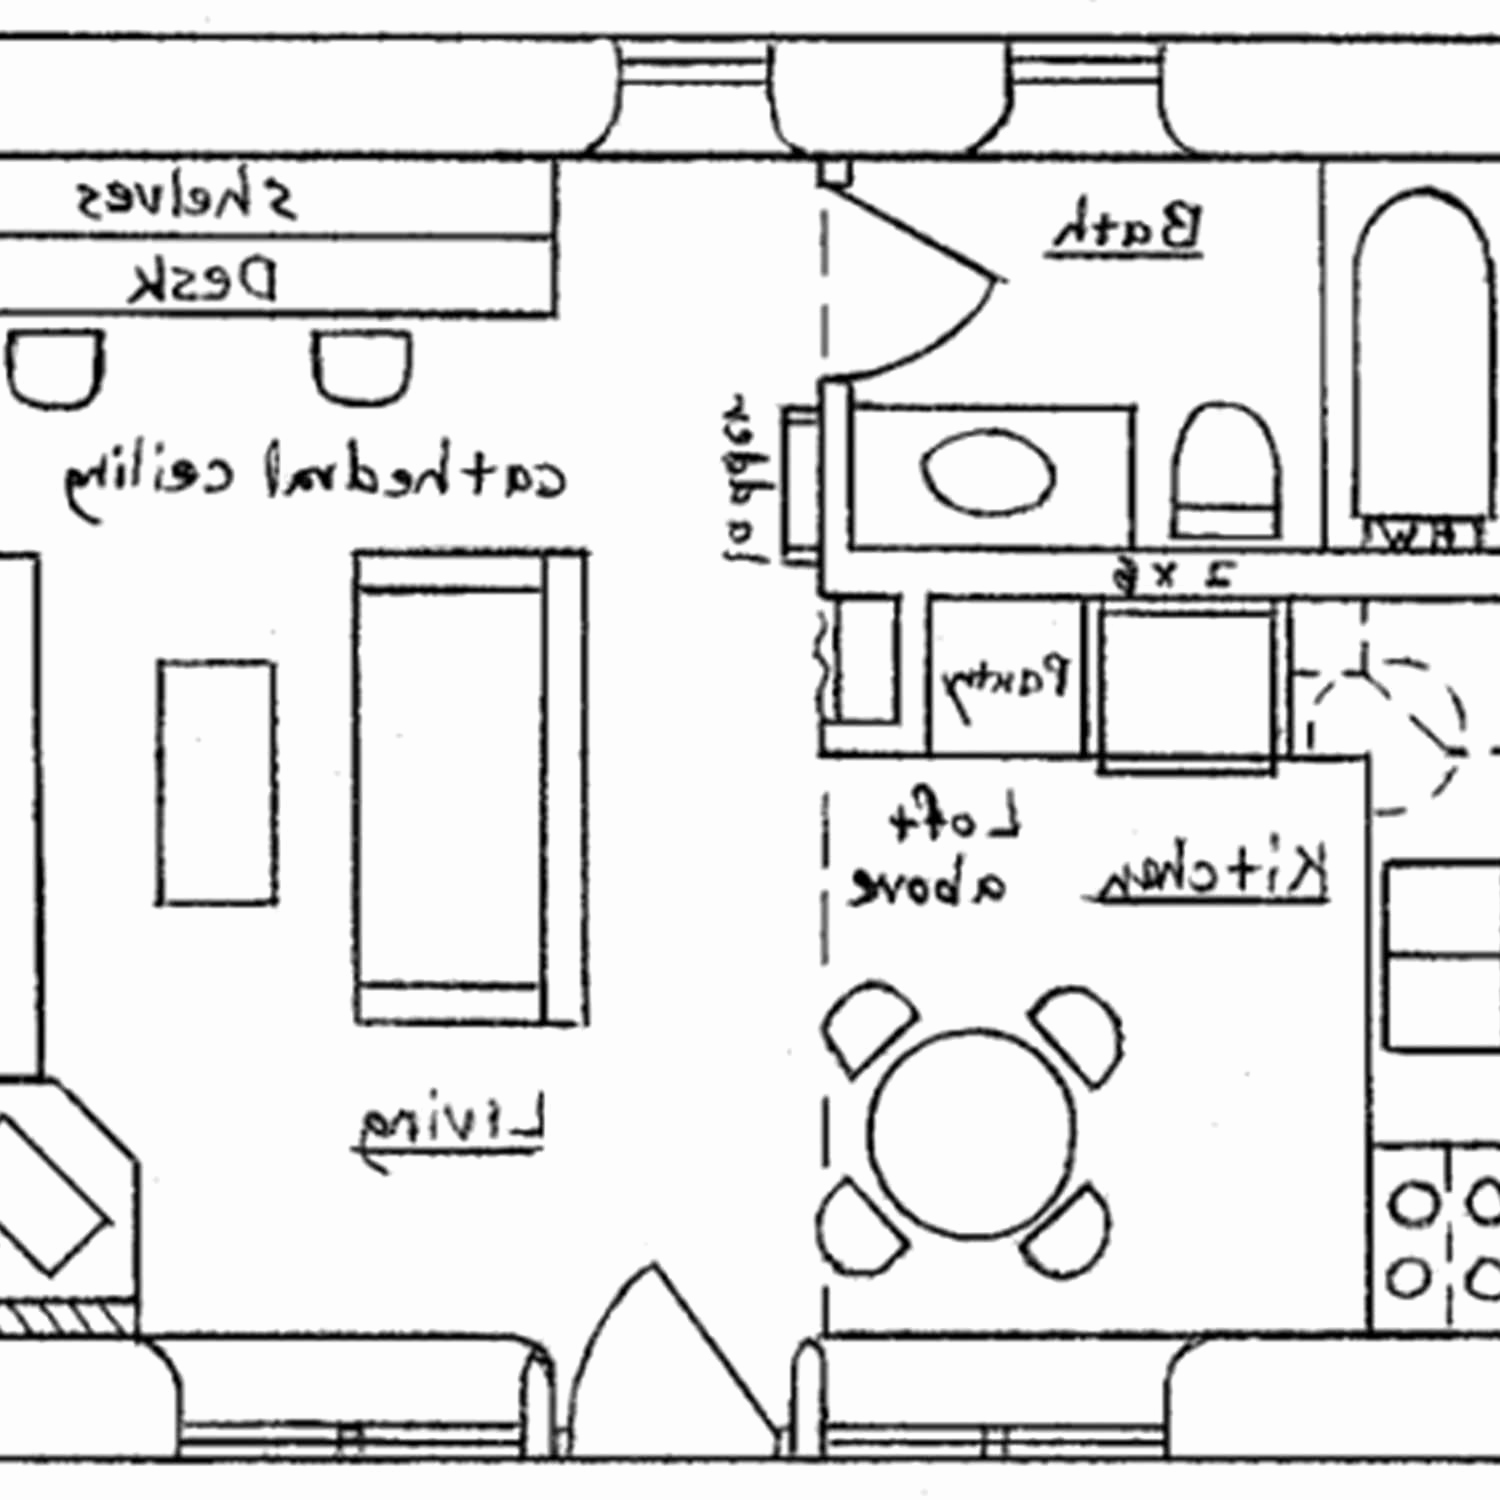 House Site Plan Drawing at GetDrawings – Draw Site Plan Free